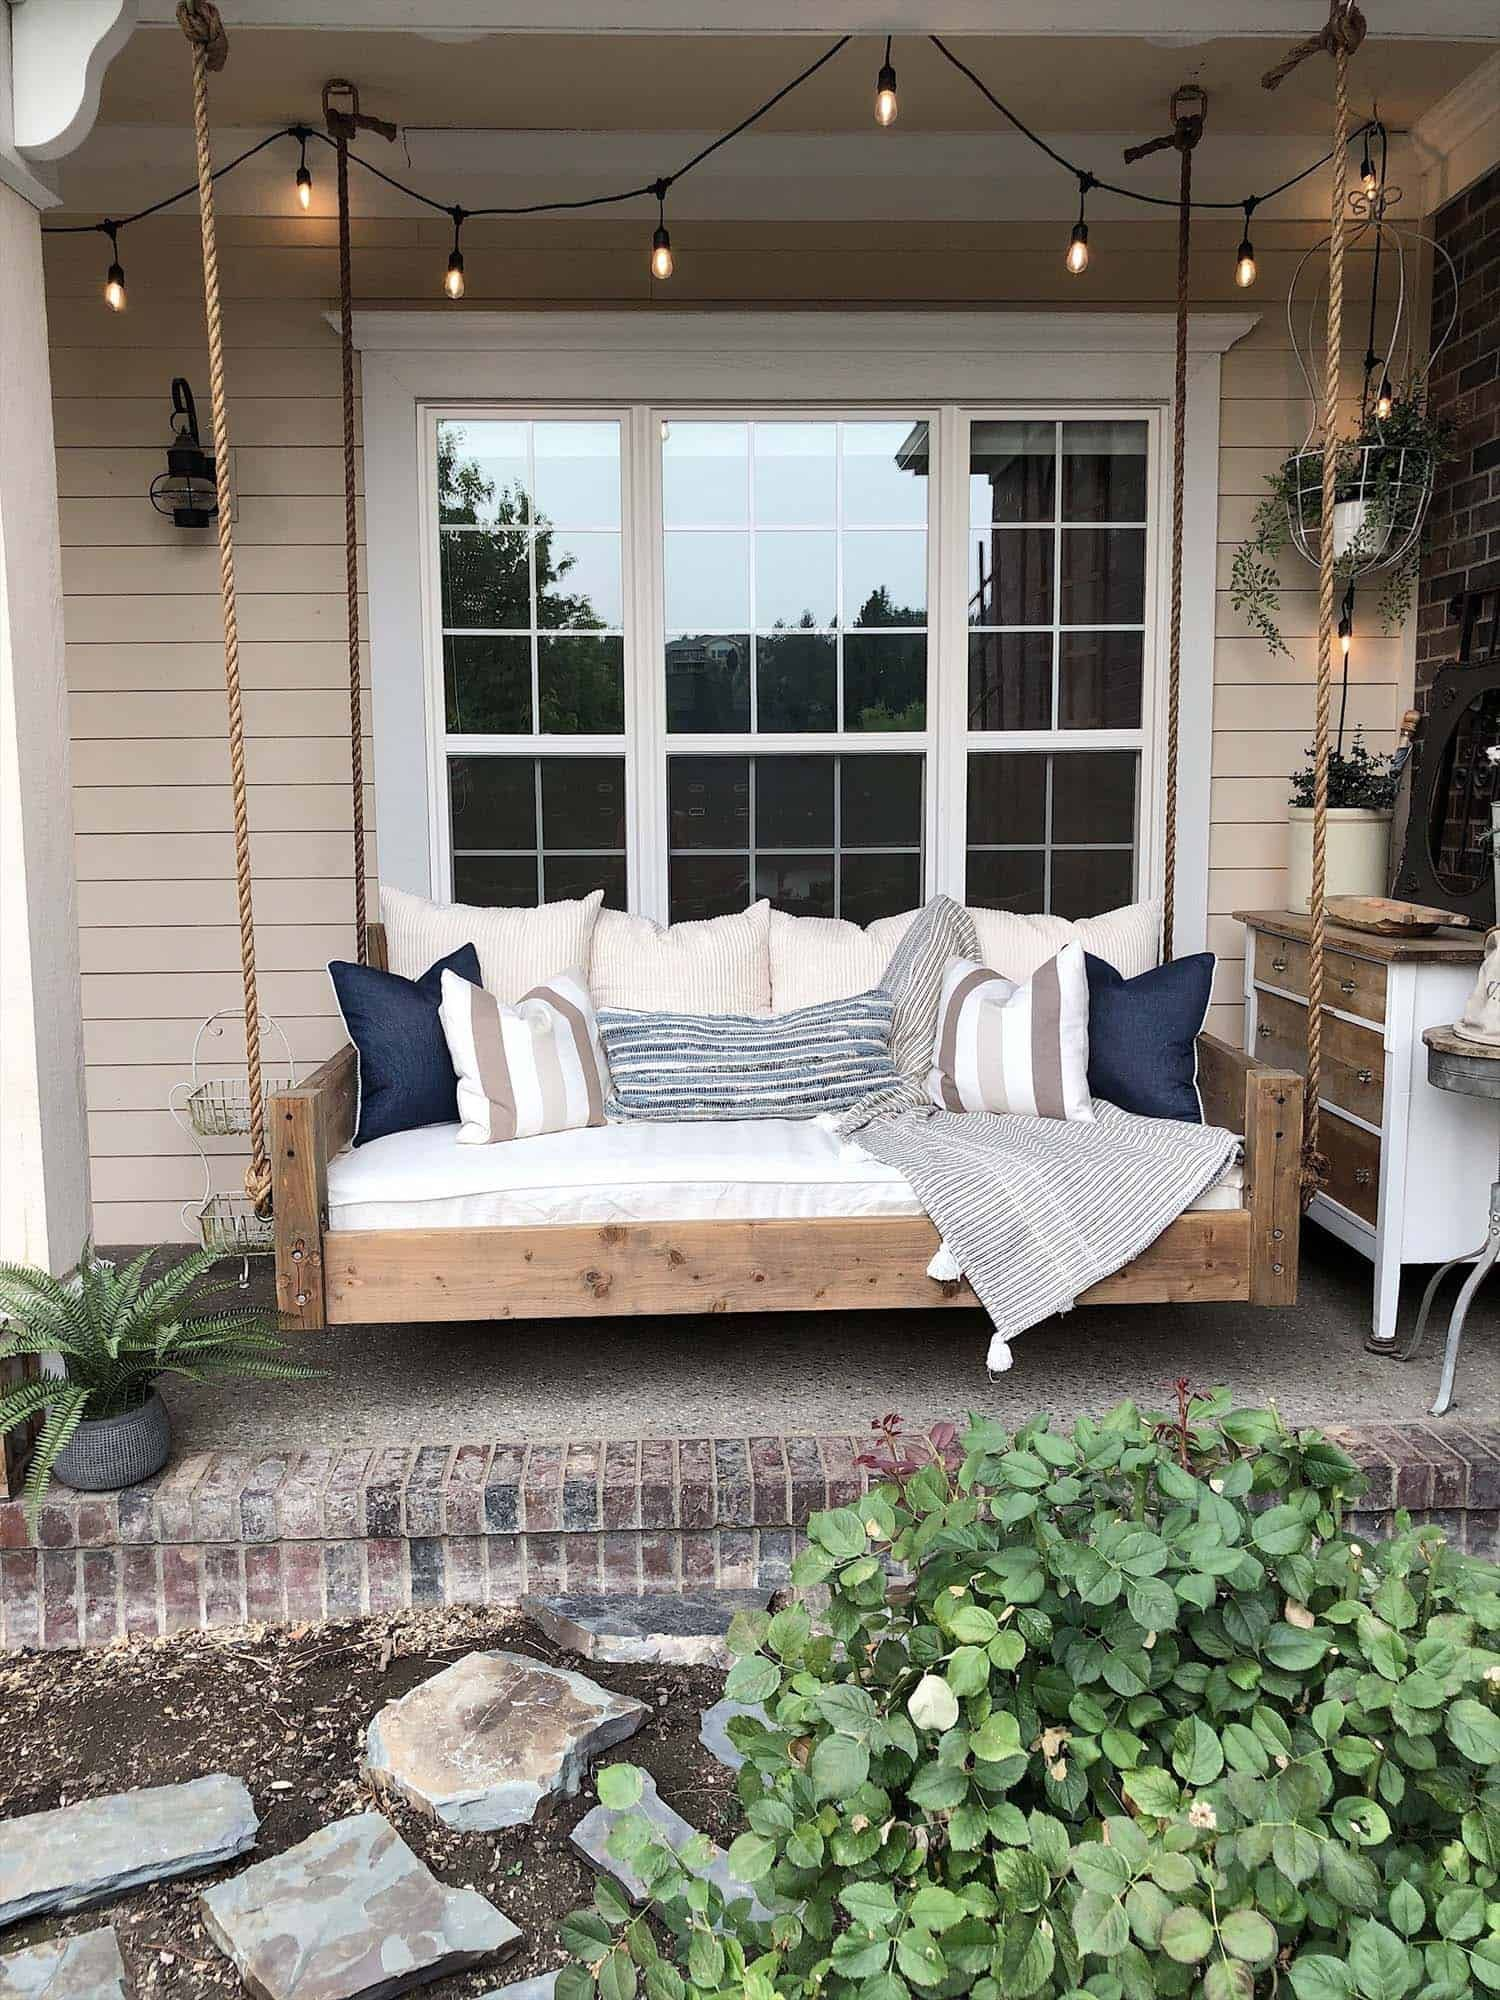 26 Incredibly Relaxing Swinging Bed Ideas For Your Porch Diy